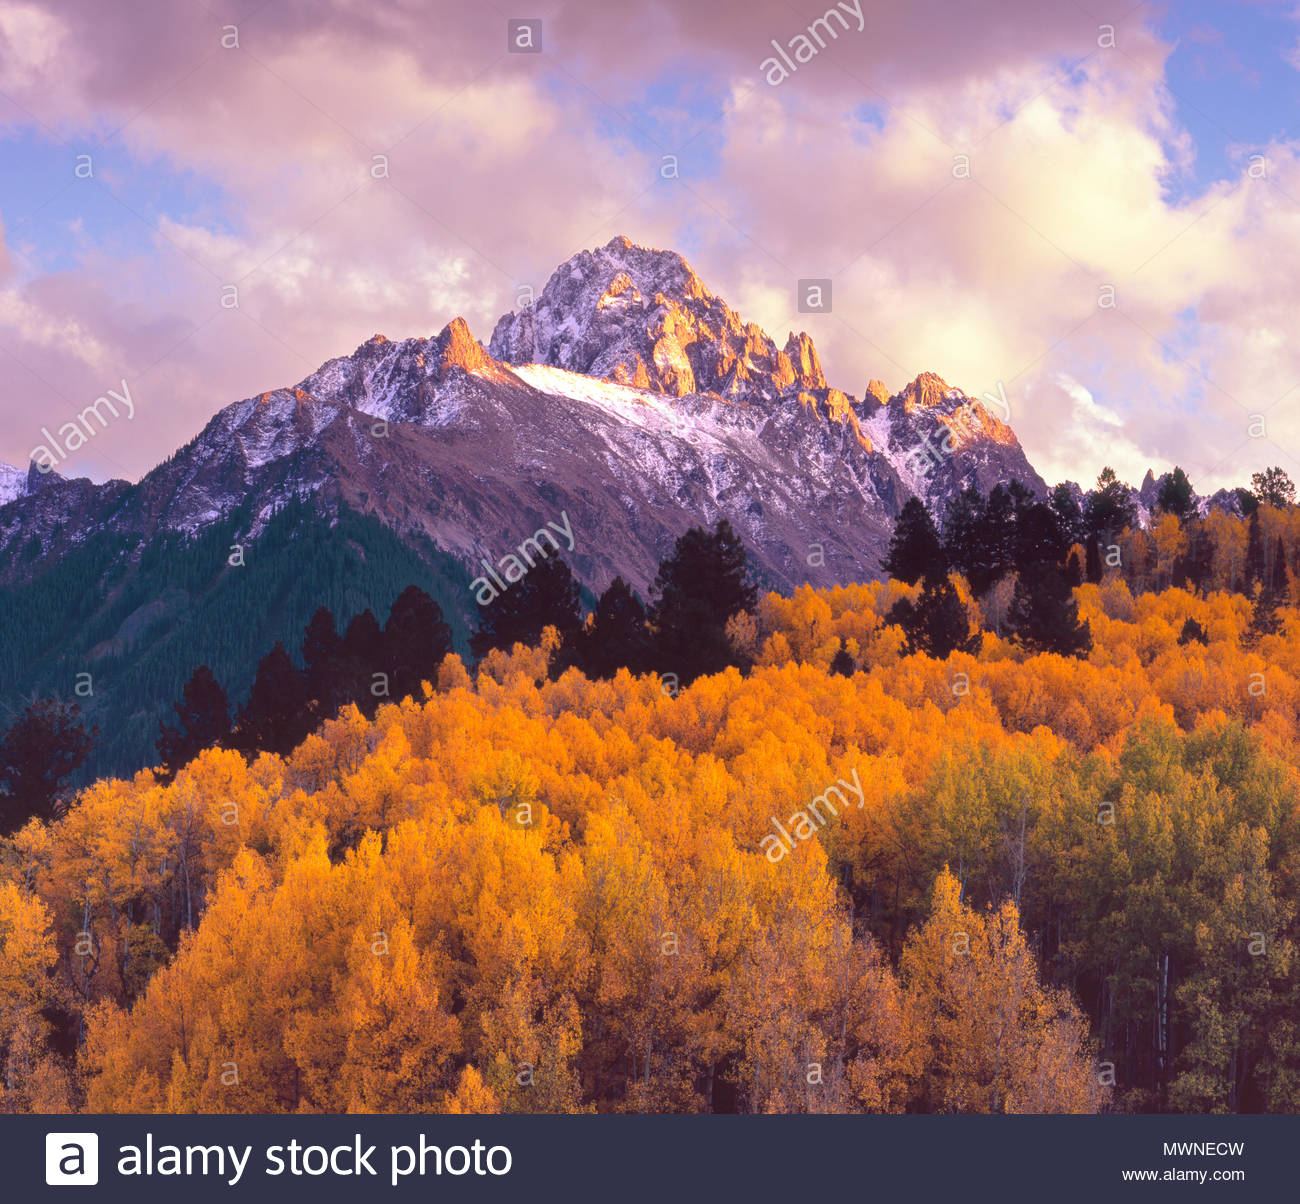 Mount Sneffels and Aspen at Sunset, Uncompahgre National Forest, Colorado - Stock Image